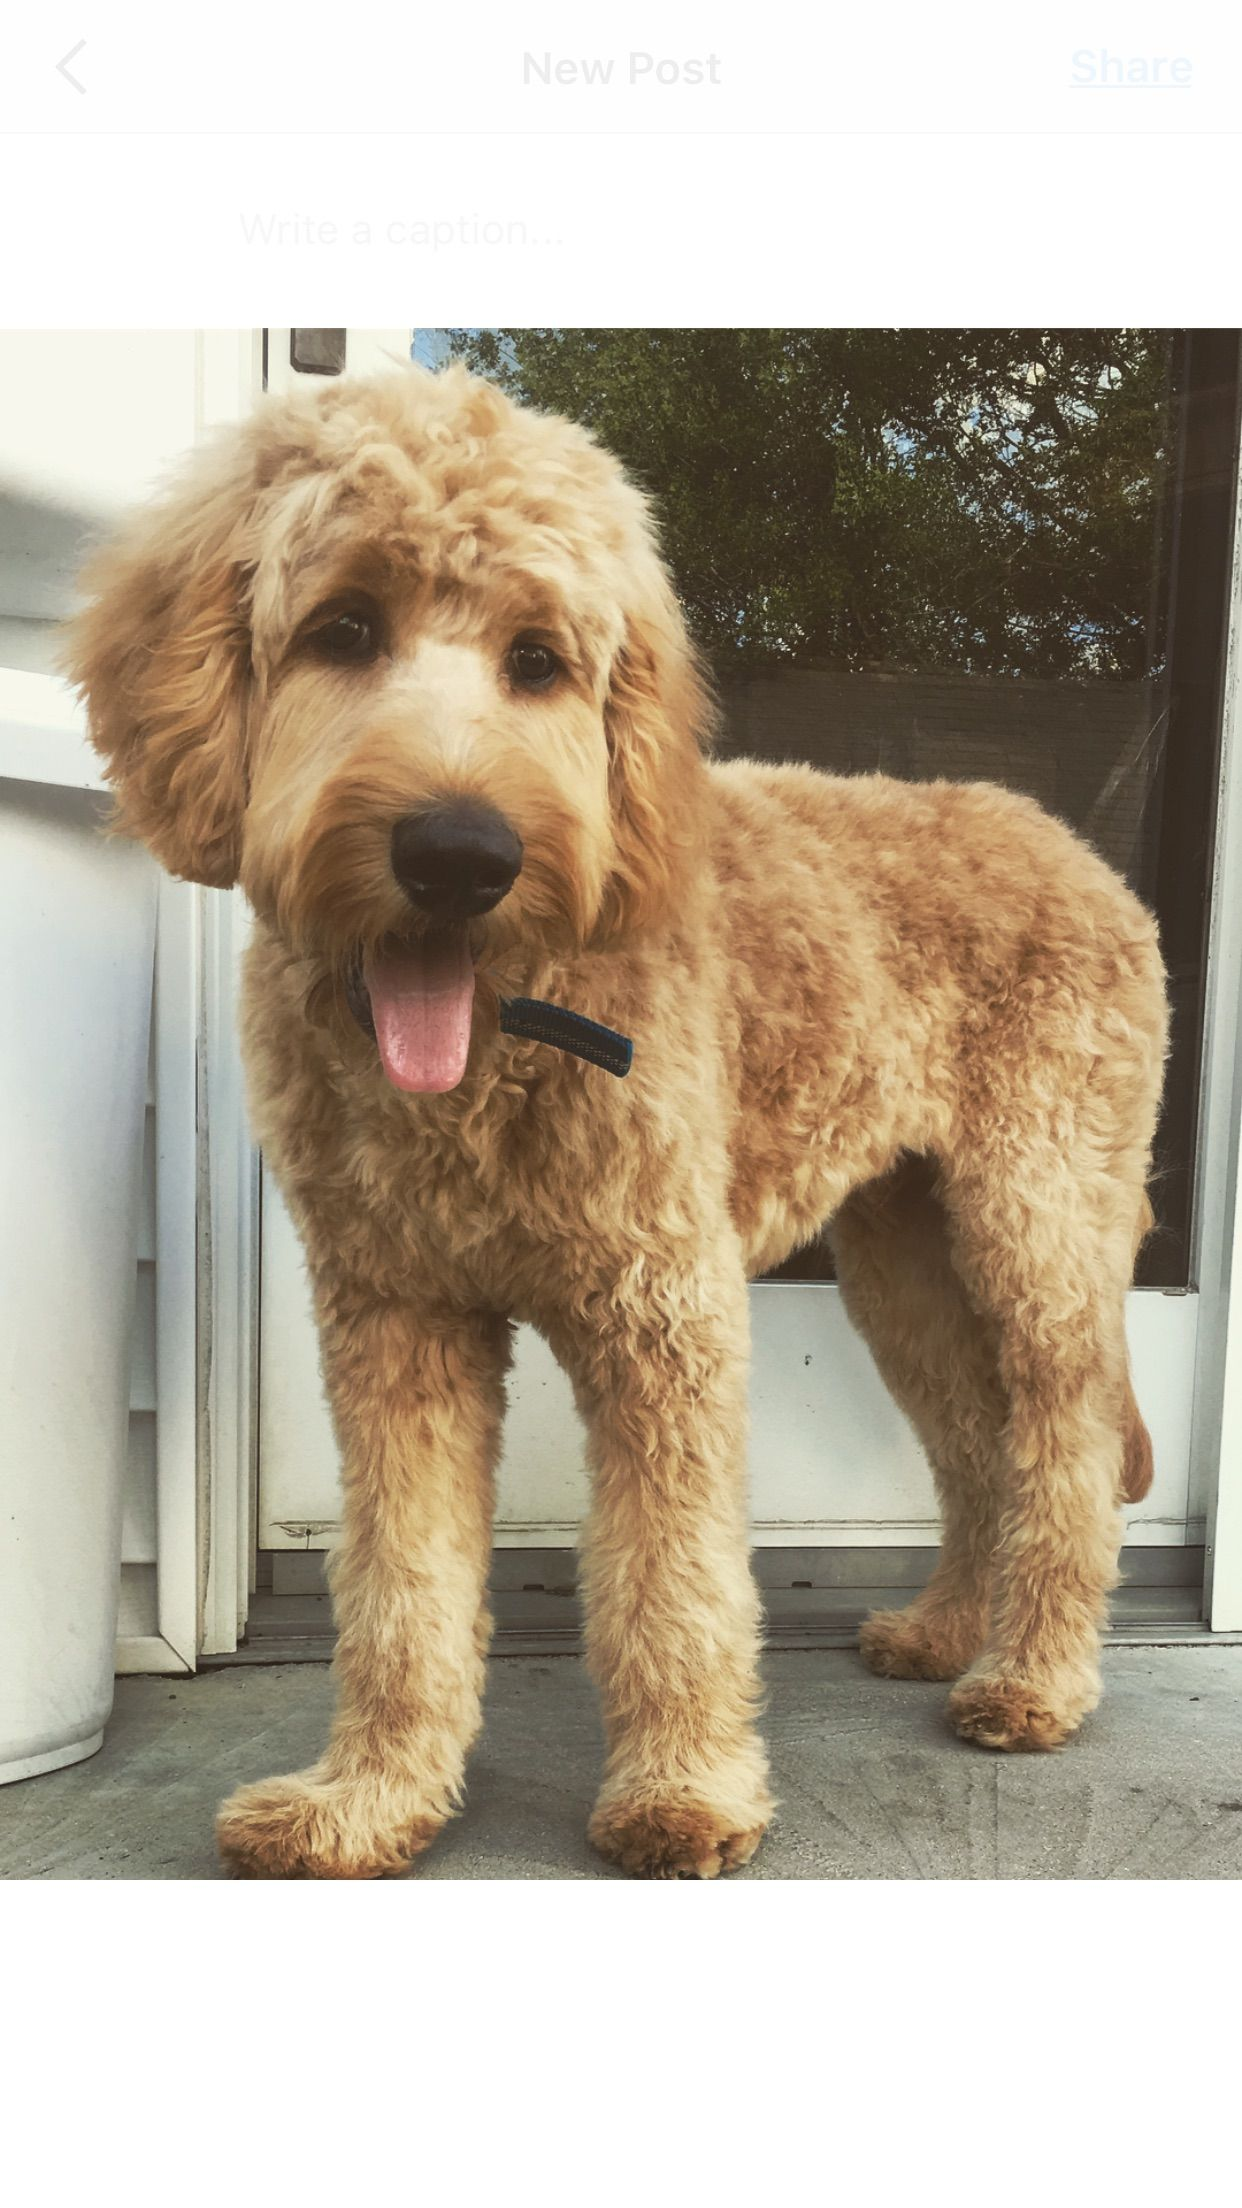 goldendoodle haircuts goldendoodle grooming timberidge goldendoodle groomed goldendoodle haircuts goldendoodle